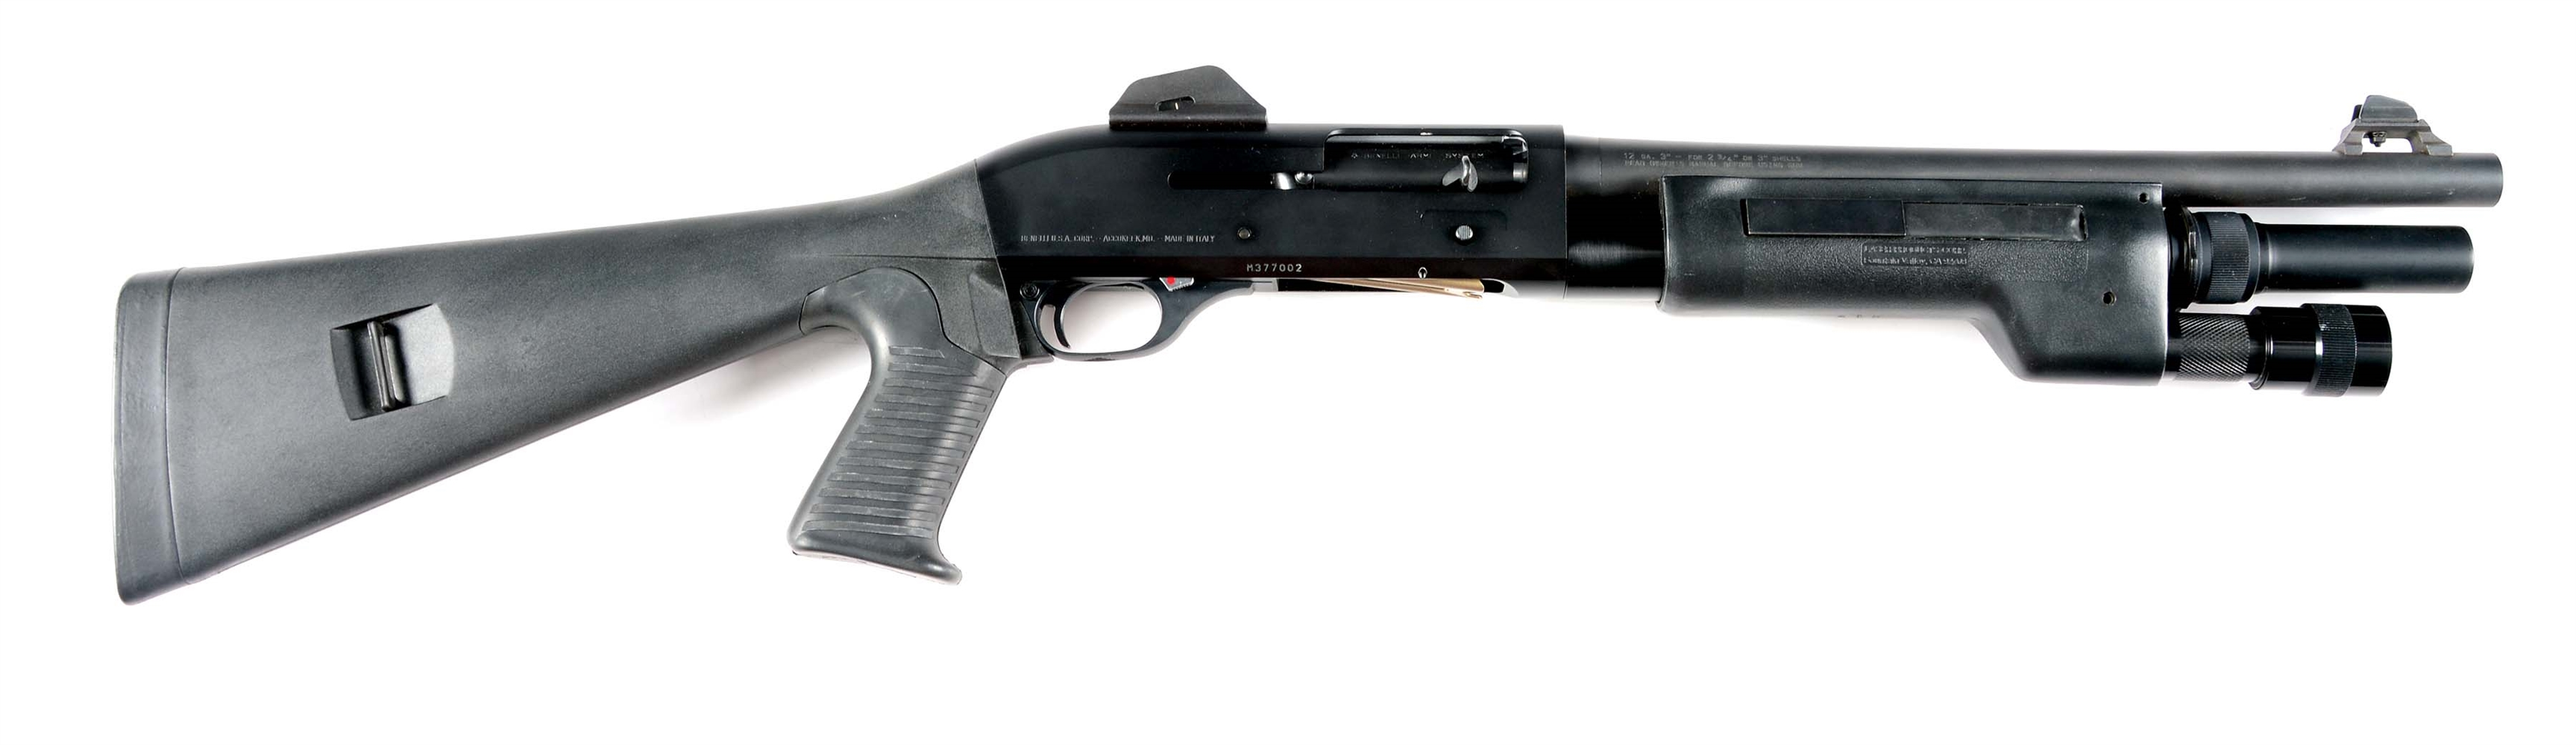 (N) BENELLI M1 SUPER 90 SEMI-AUTOMATIC SHORT BARREL SHOTGUN WITH BOX (SHORT BARREL SHOTGUN).